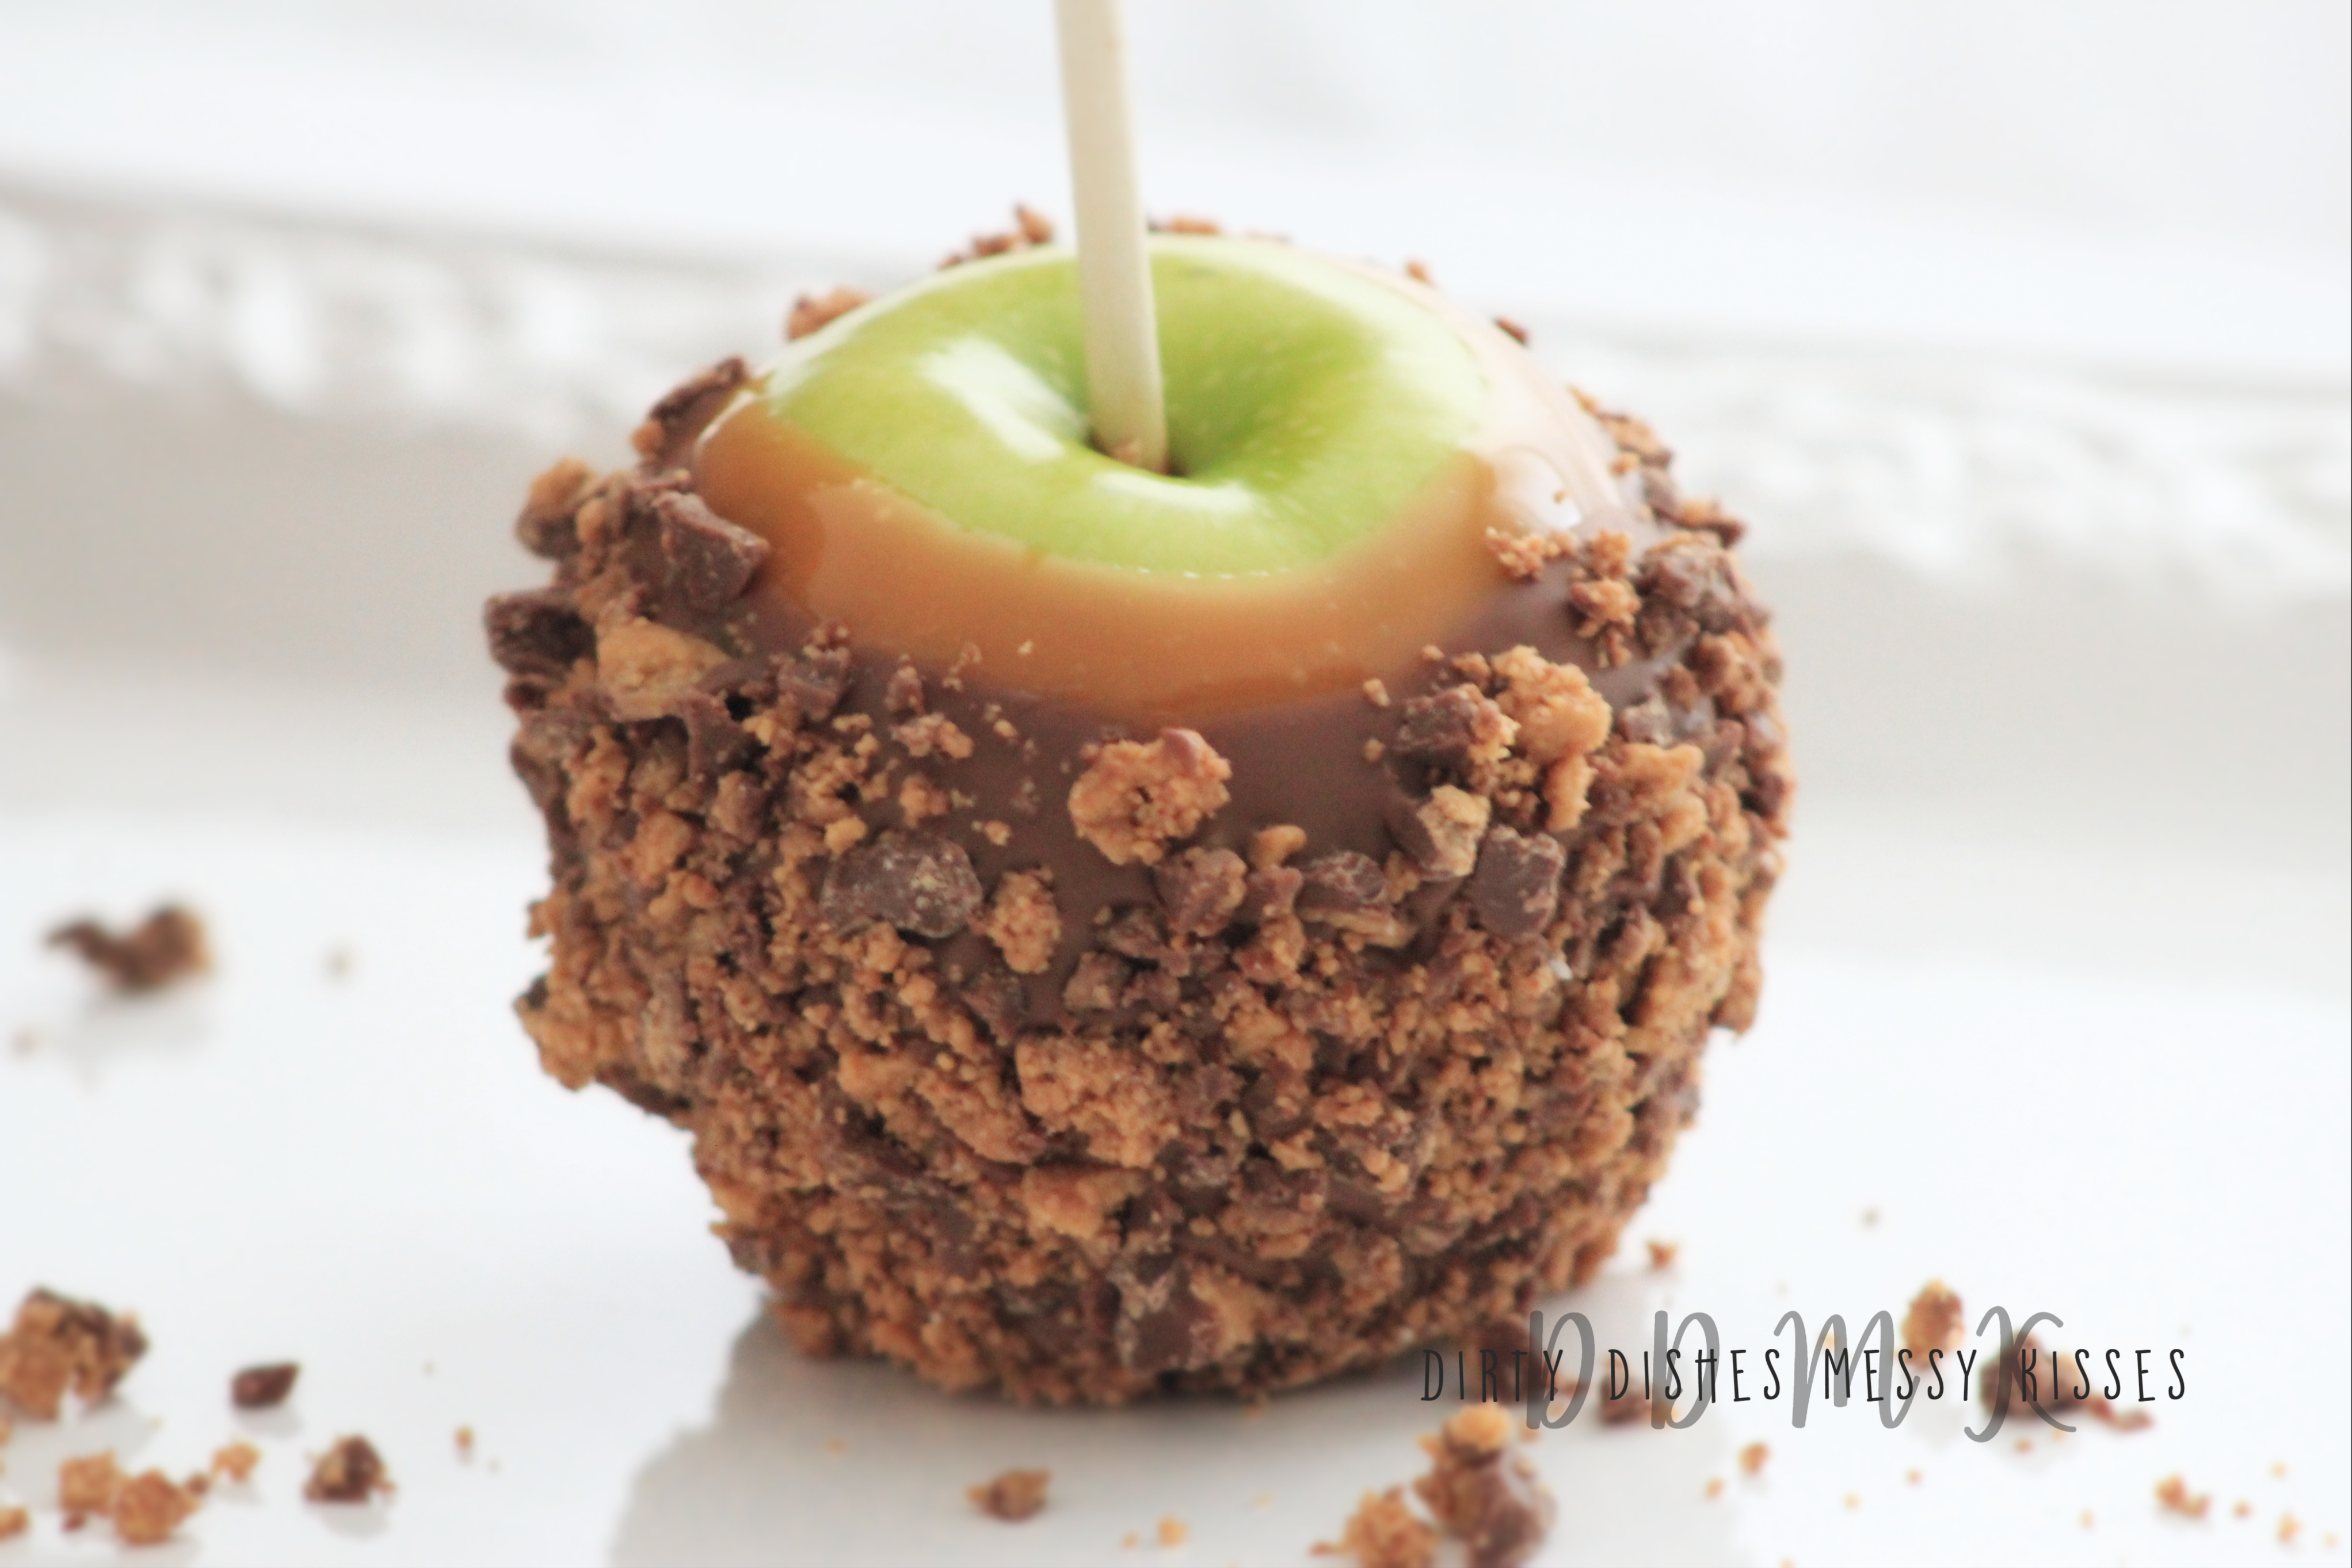 Reese S Caramel Apples Dirtydishesmessykisses Com